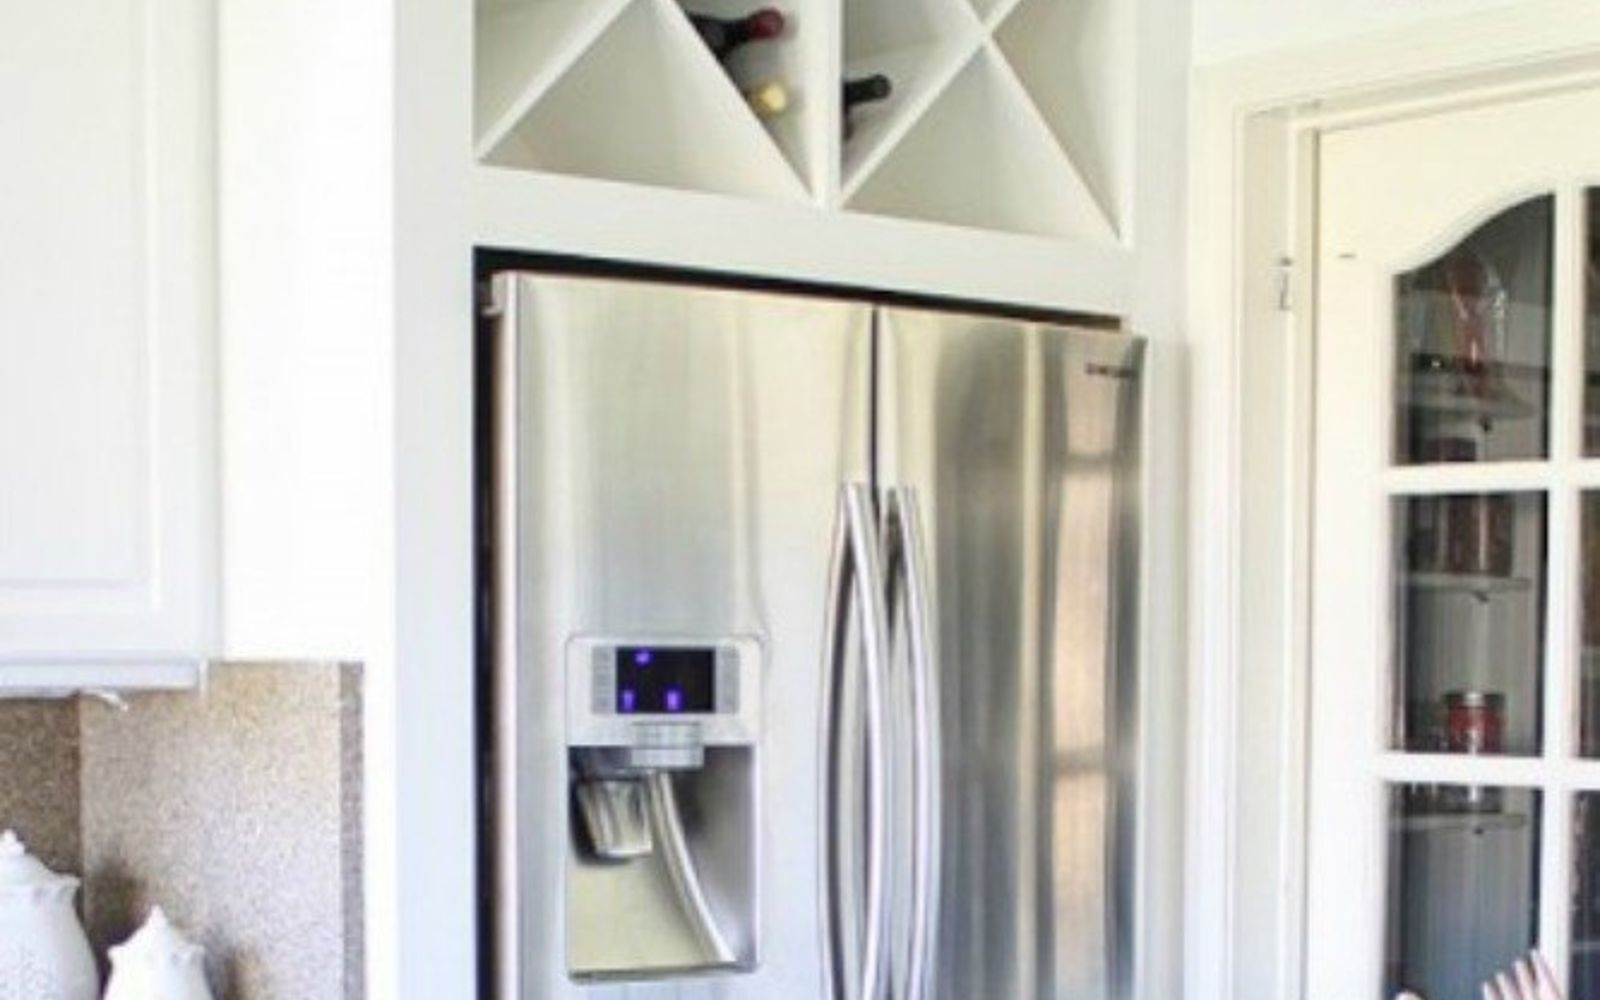 s 15 clever ways to add more kitchen storage space with open shelves, kitchen design, shelving ideas, storage ideas, Place open shelving above your fridge